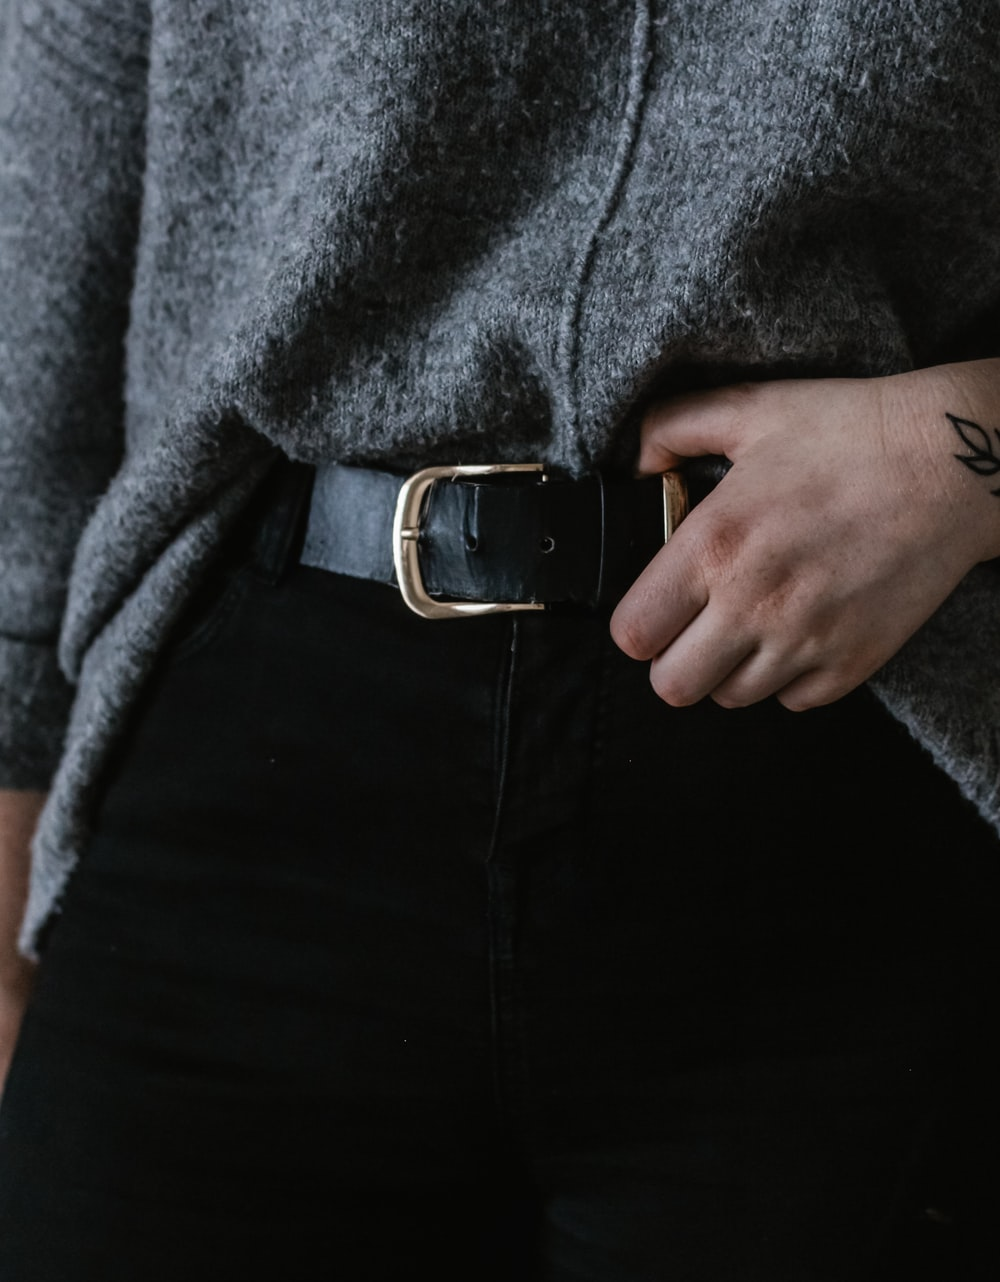 person wearing black and silver belt with buckle, black bottoms, and gray top